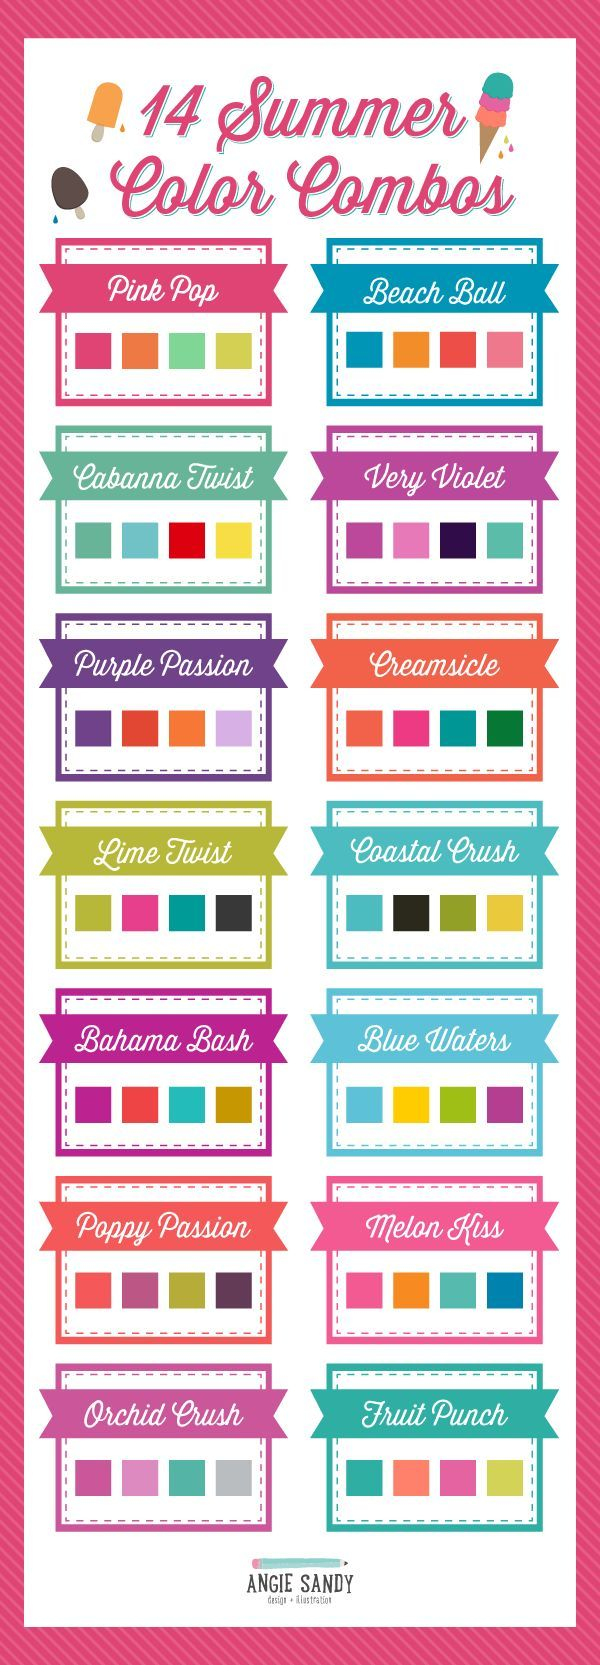 43 best pattern color images on pinterest colors prints and 14 bright summer color palettes angie sandy design illustration colorpalette colorcrush nvjuhfo Gallery